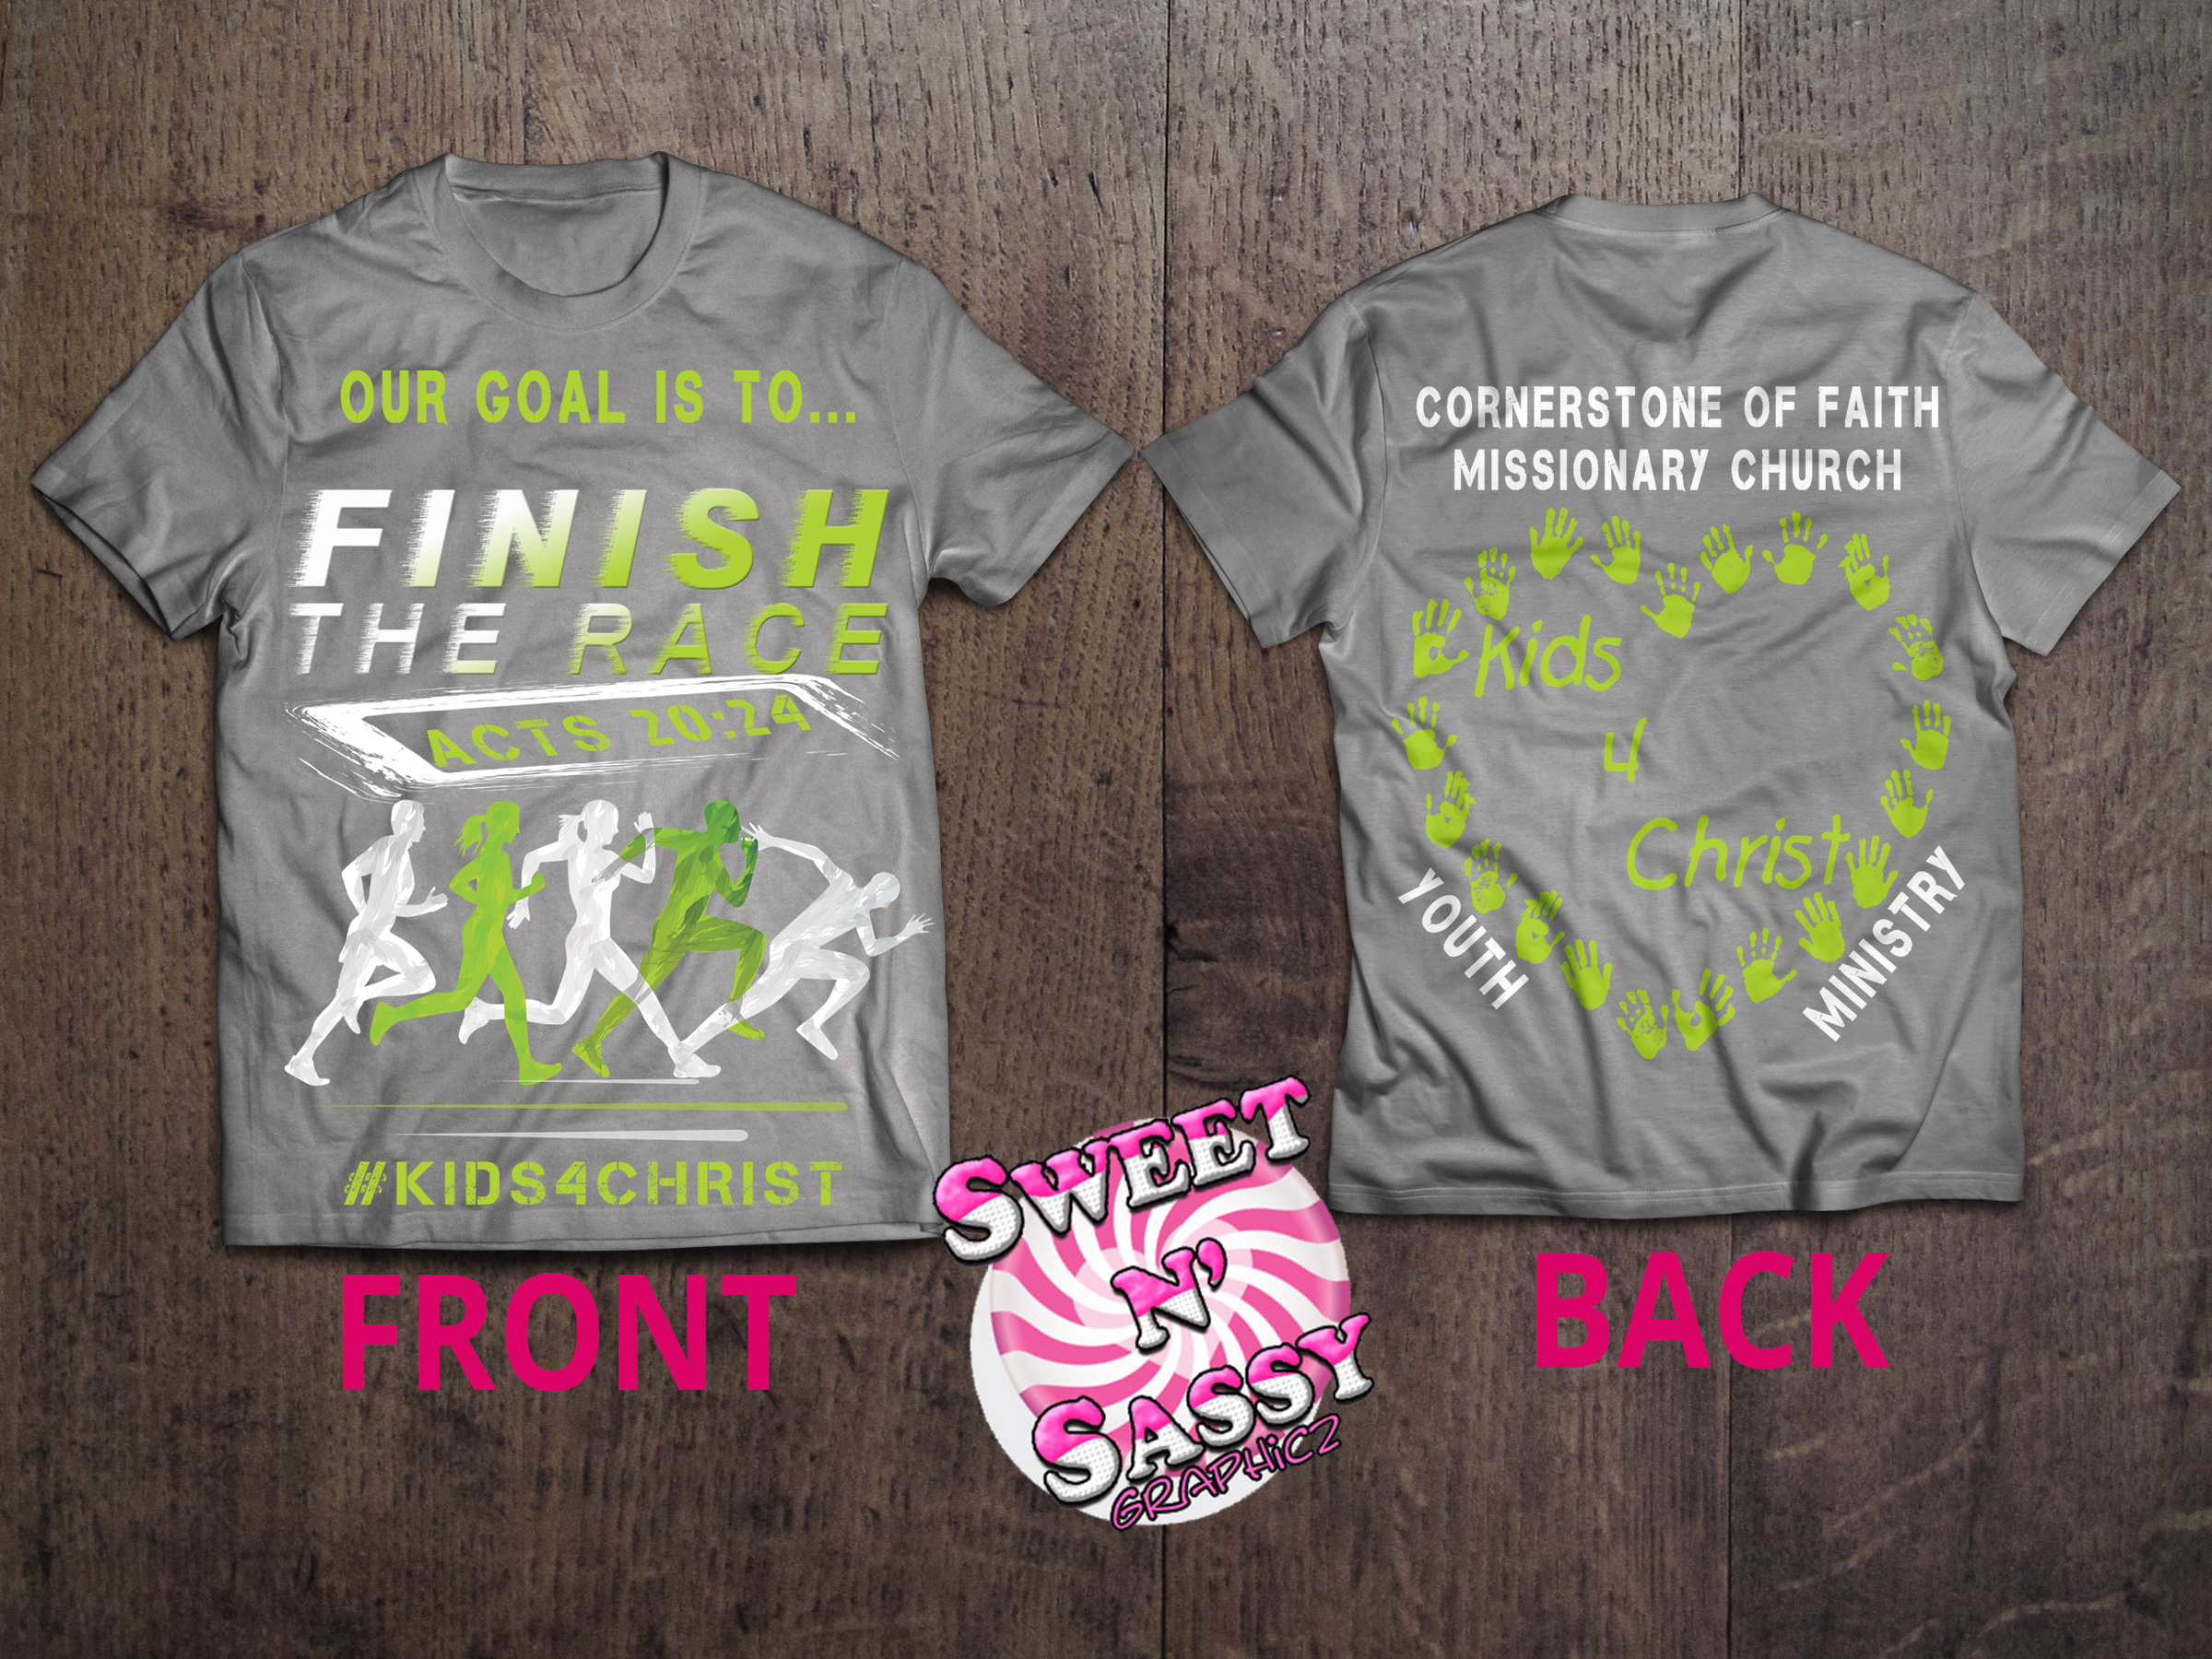 Youth Ministry T-shirt Design